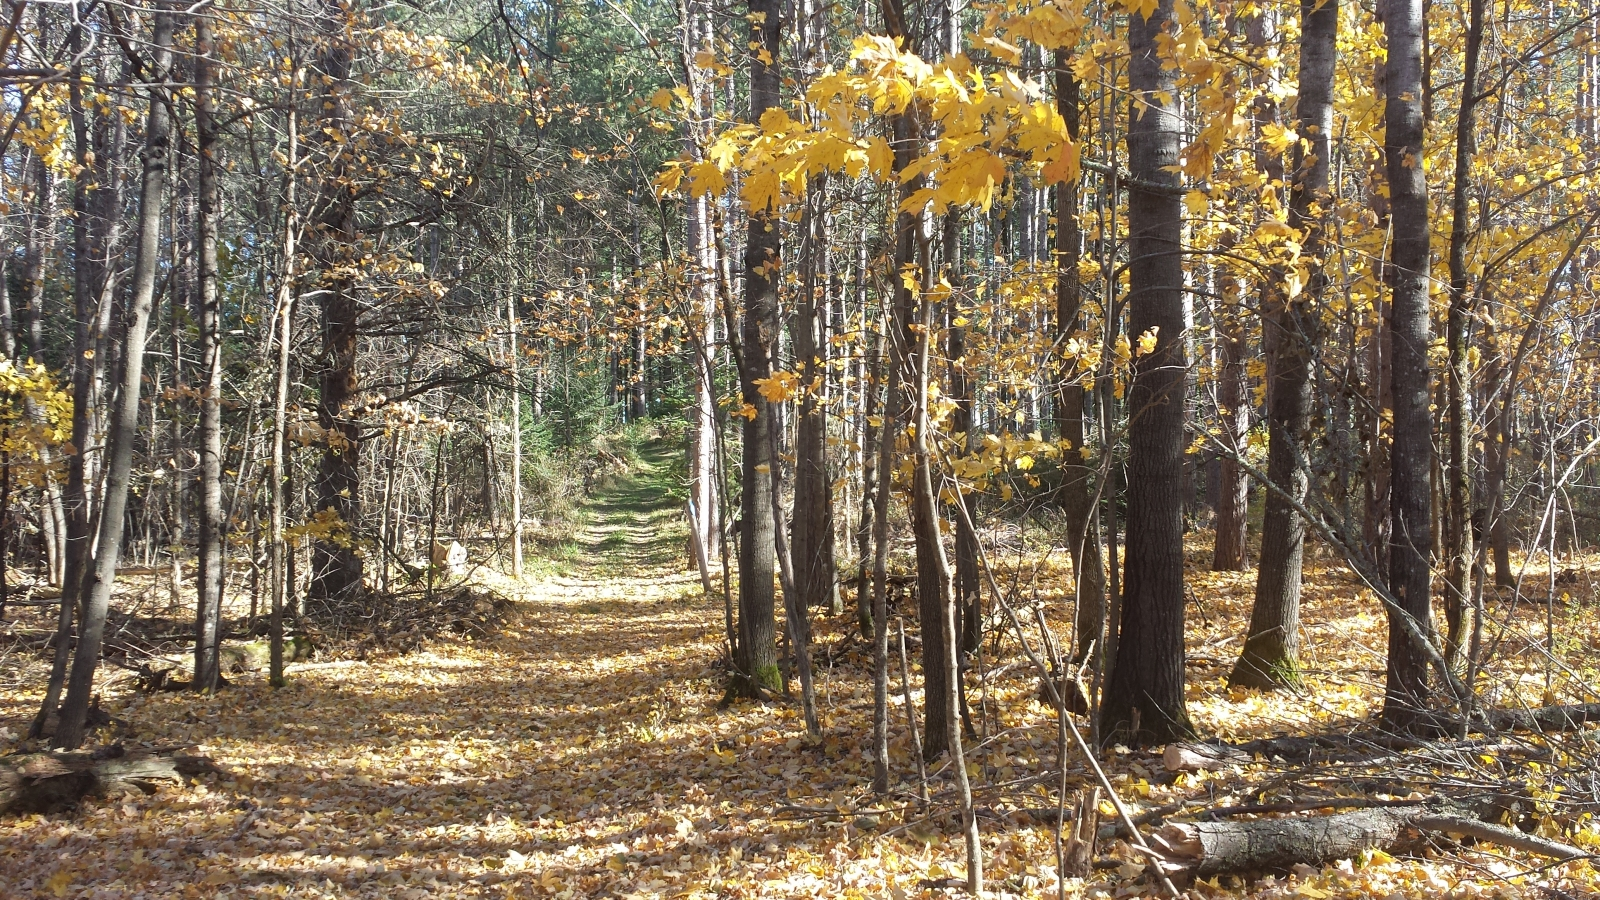 Walking along the trail during a fall day in Moose Lake State Park. Photo by Lianna Matt.